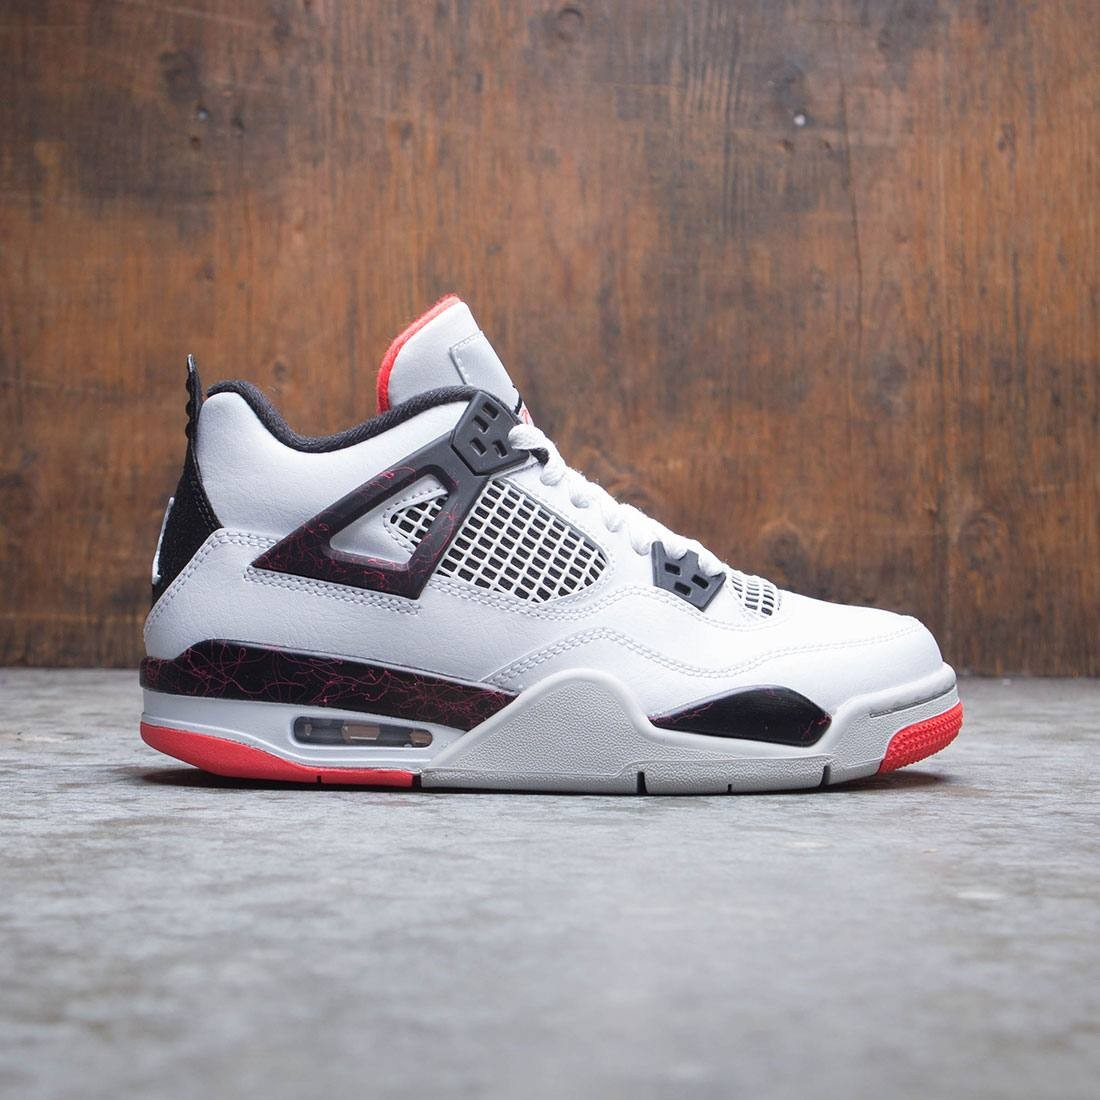 Air Jordan IV Retro (GS) Big Kids (white / black-bright crimson)